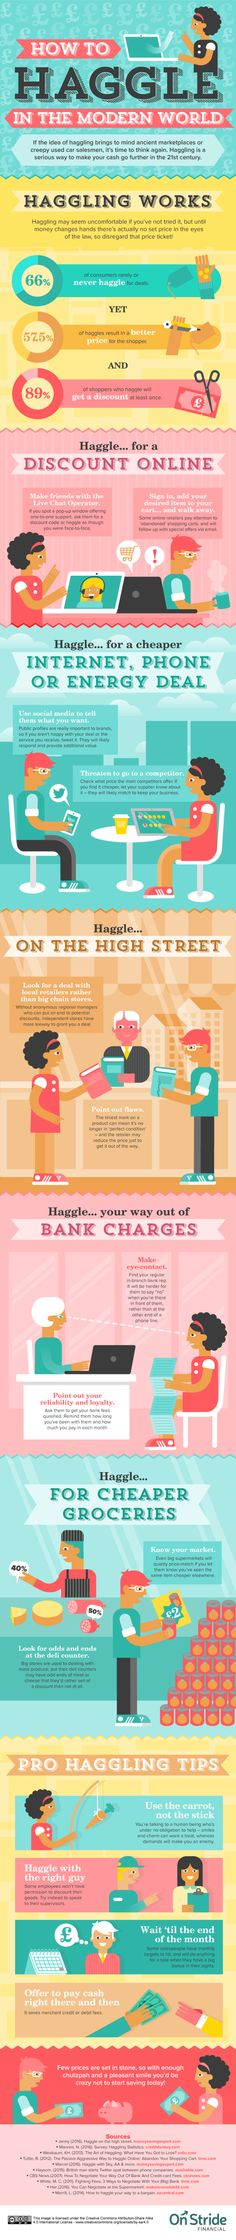 How To Haggle In The Modern World #Infographic #HowTo #Marketing